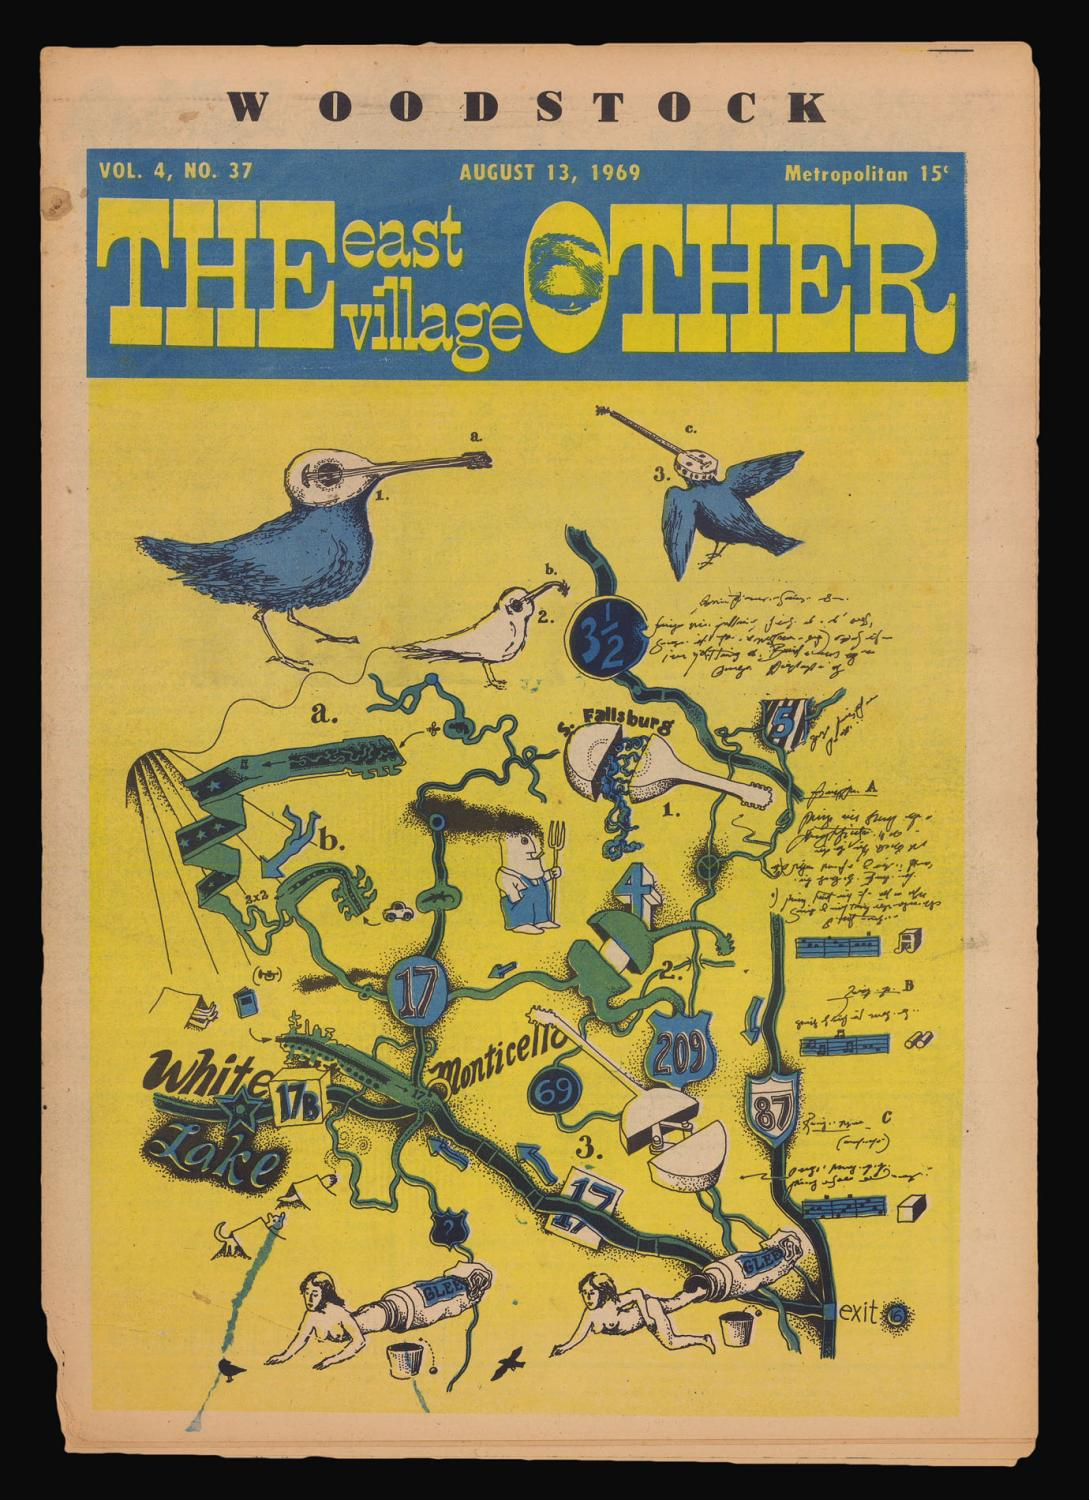 Psychedelic Map Of Woodstock De The Other East Village 1969